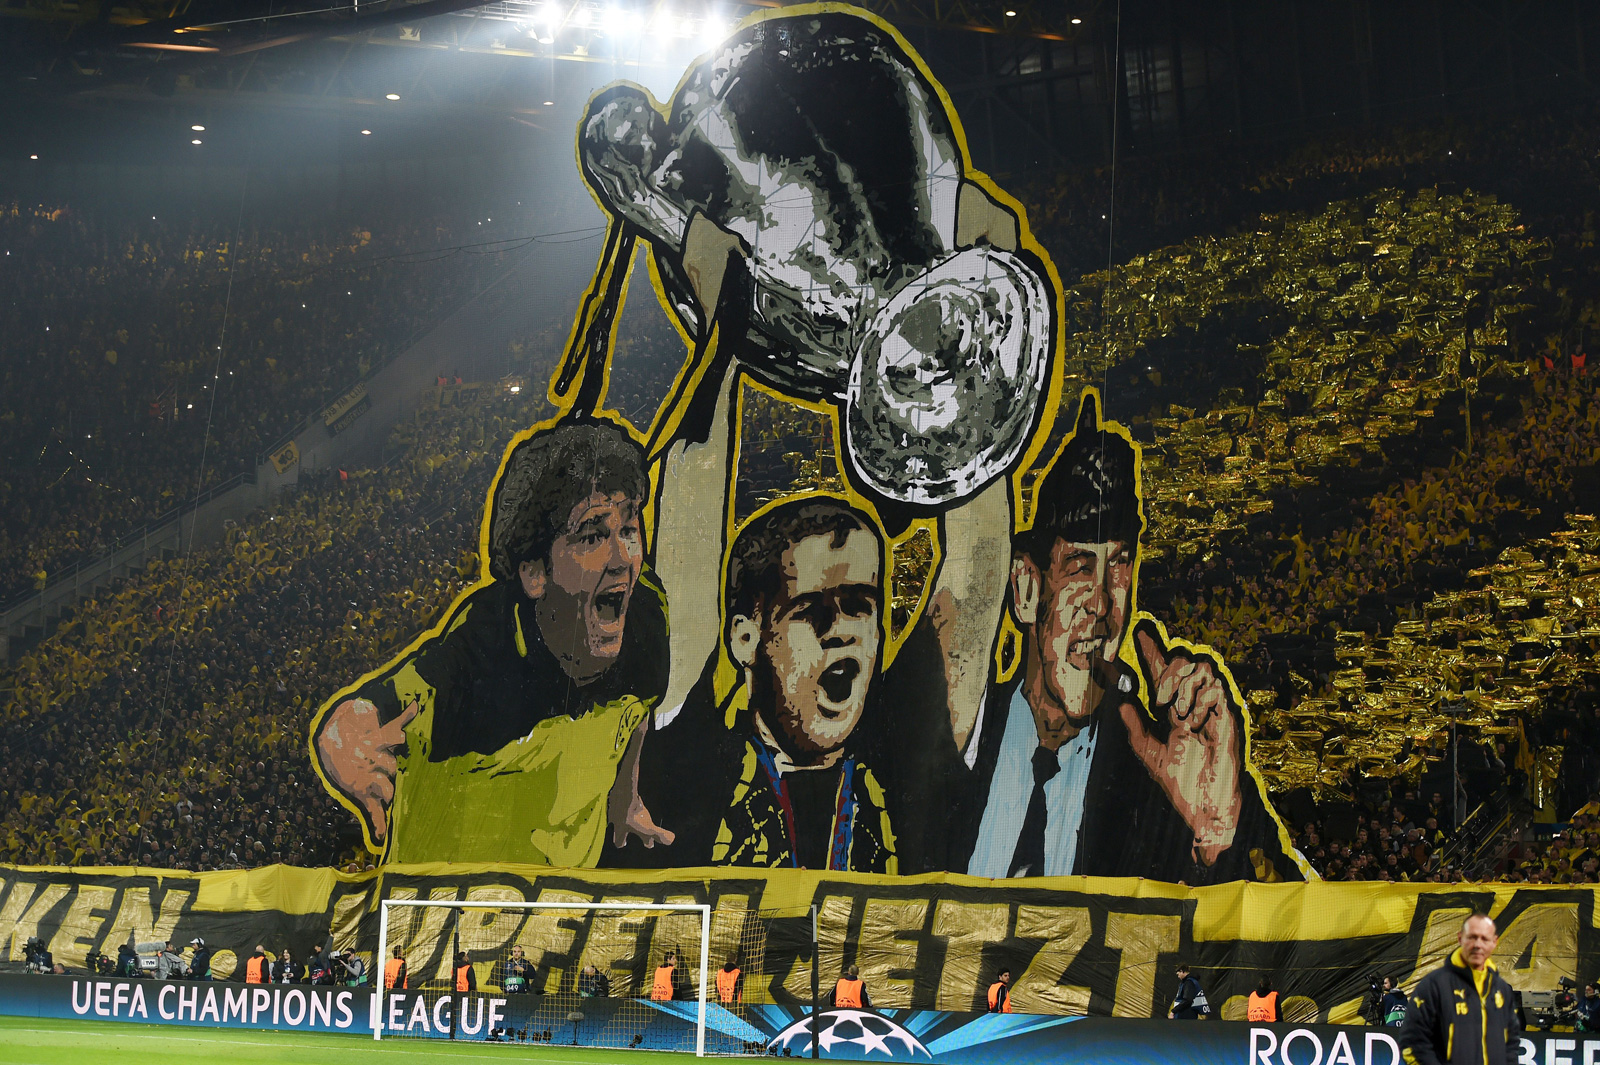 Dortmund fans commemorate their 1997 Champions League trophy in the club's clash vs. Juventus–the opponent on the wrong side of that title bout.